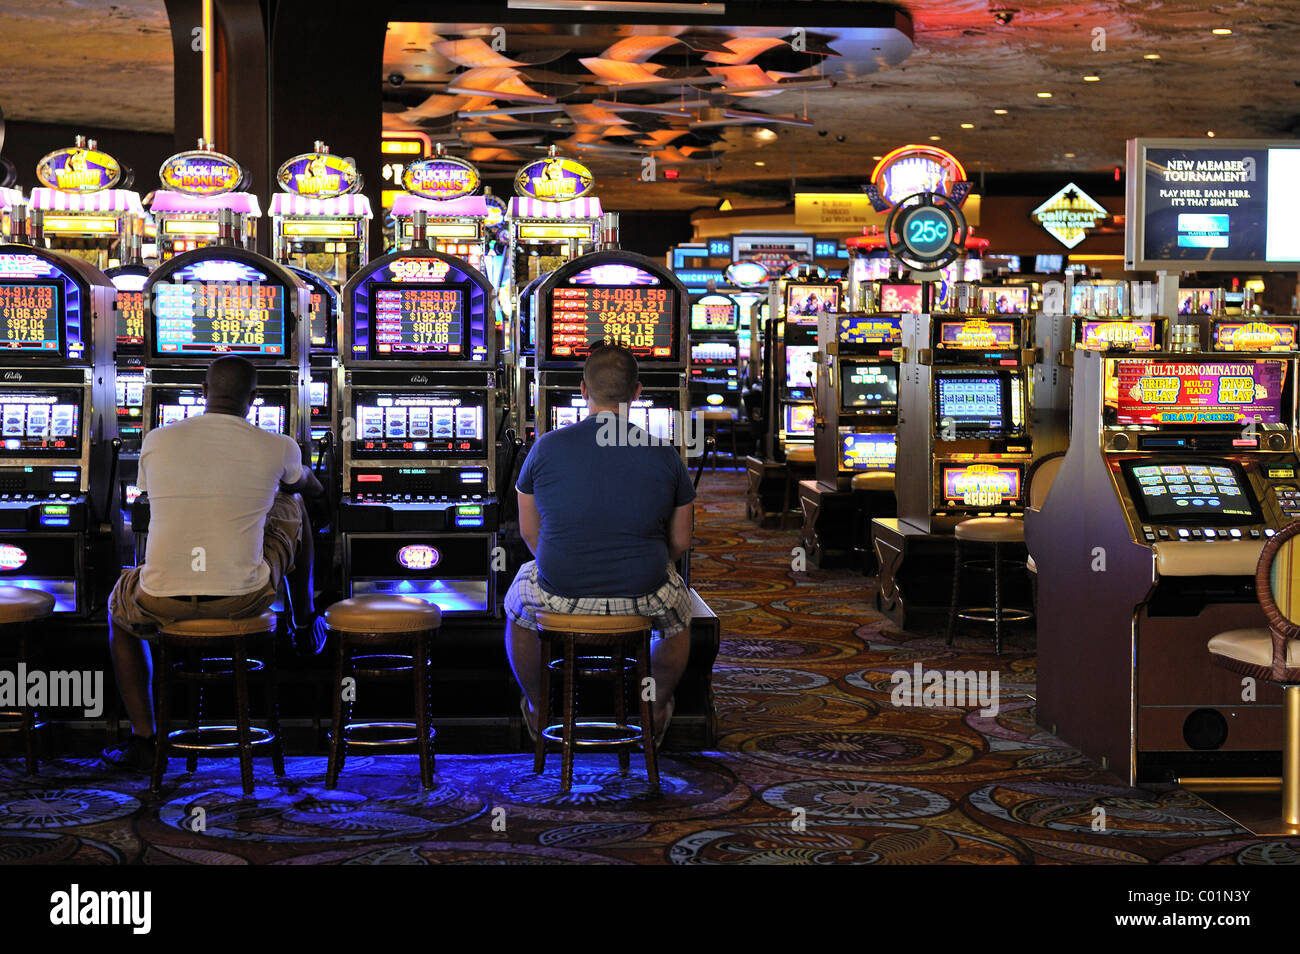 Spielautomaten Slot Machines In The 5-star Mirage Hotel, Las Vegas